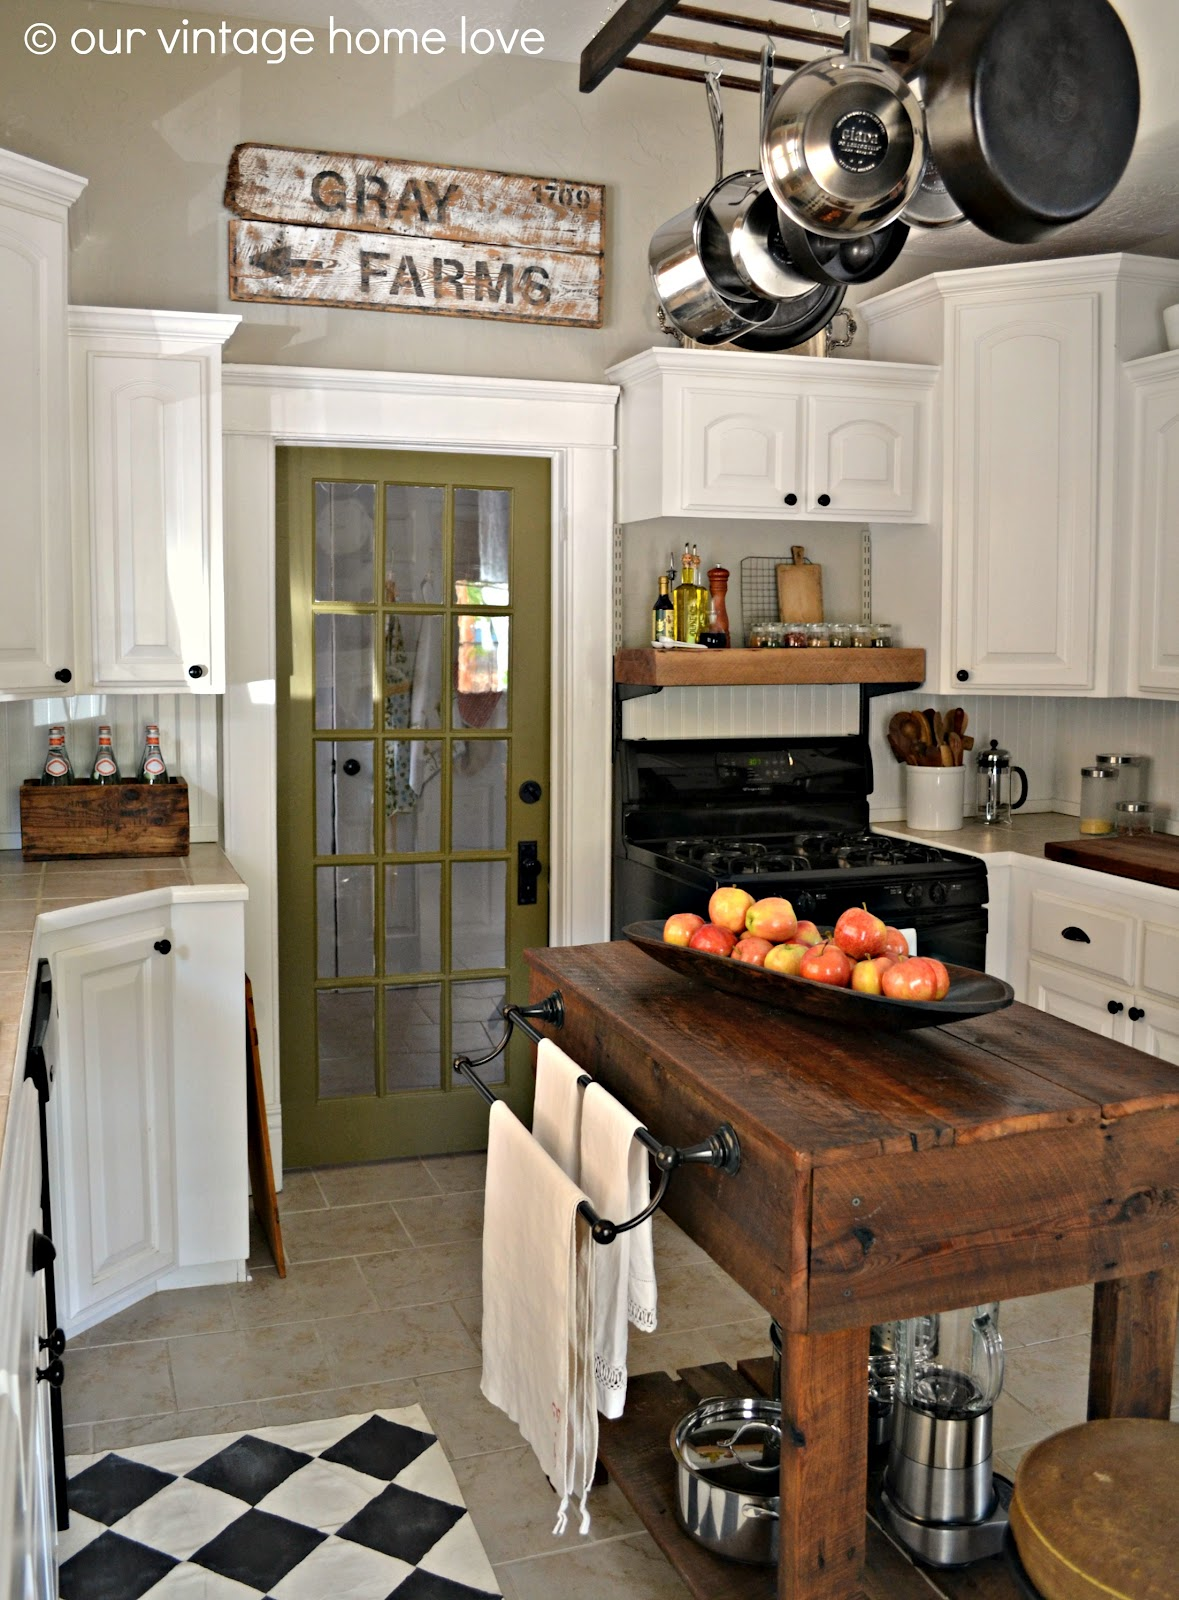 A Few Rustic Touches go a Long Way